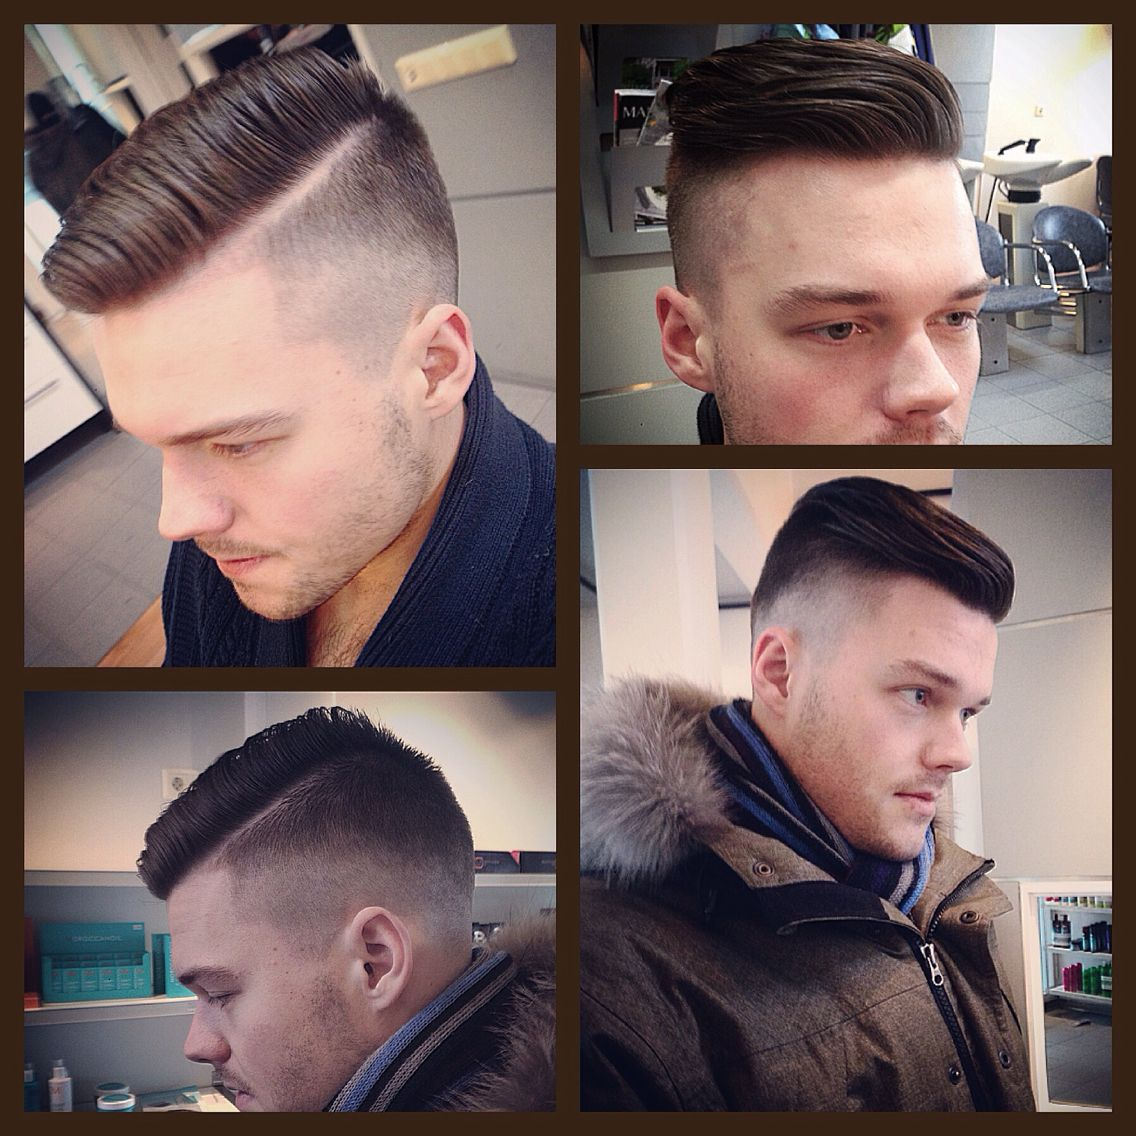 Man hair cut  Extra fade  Like it love it  Love my job